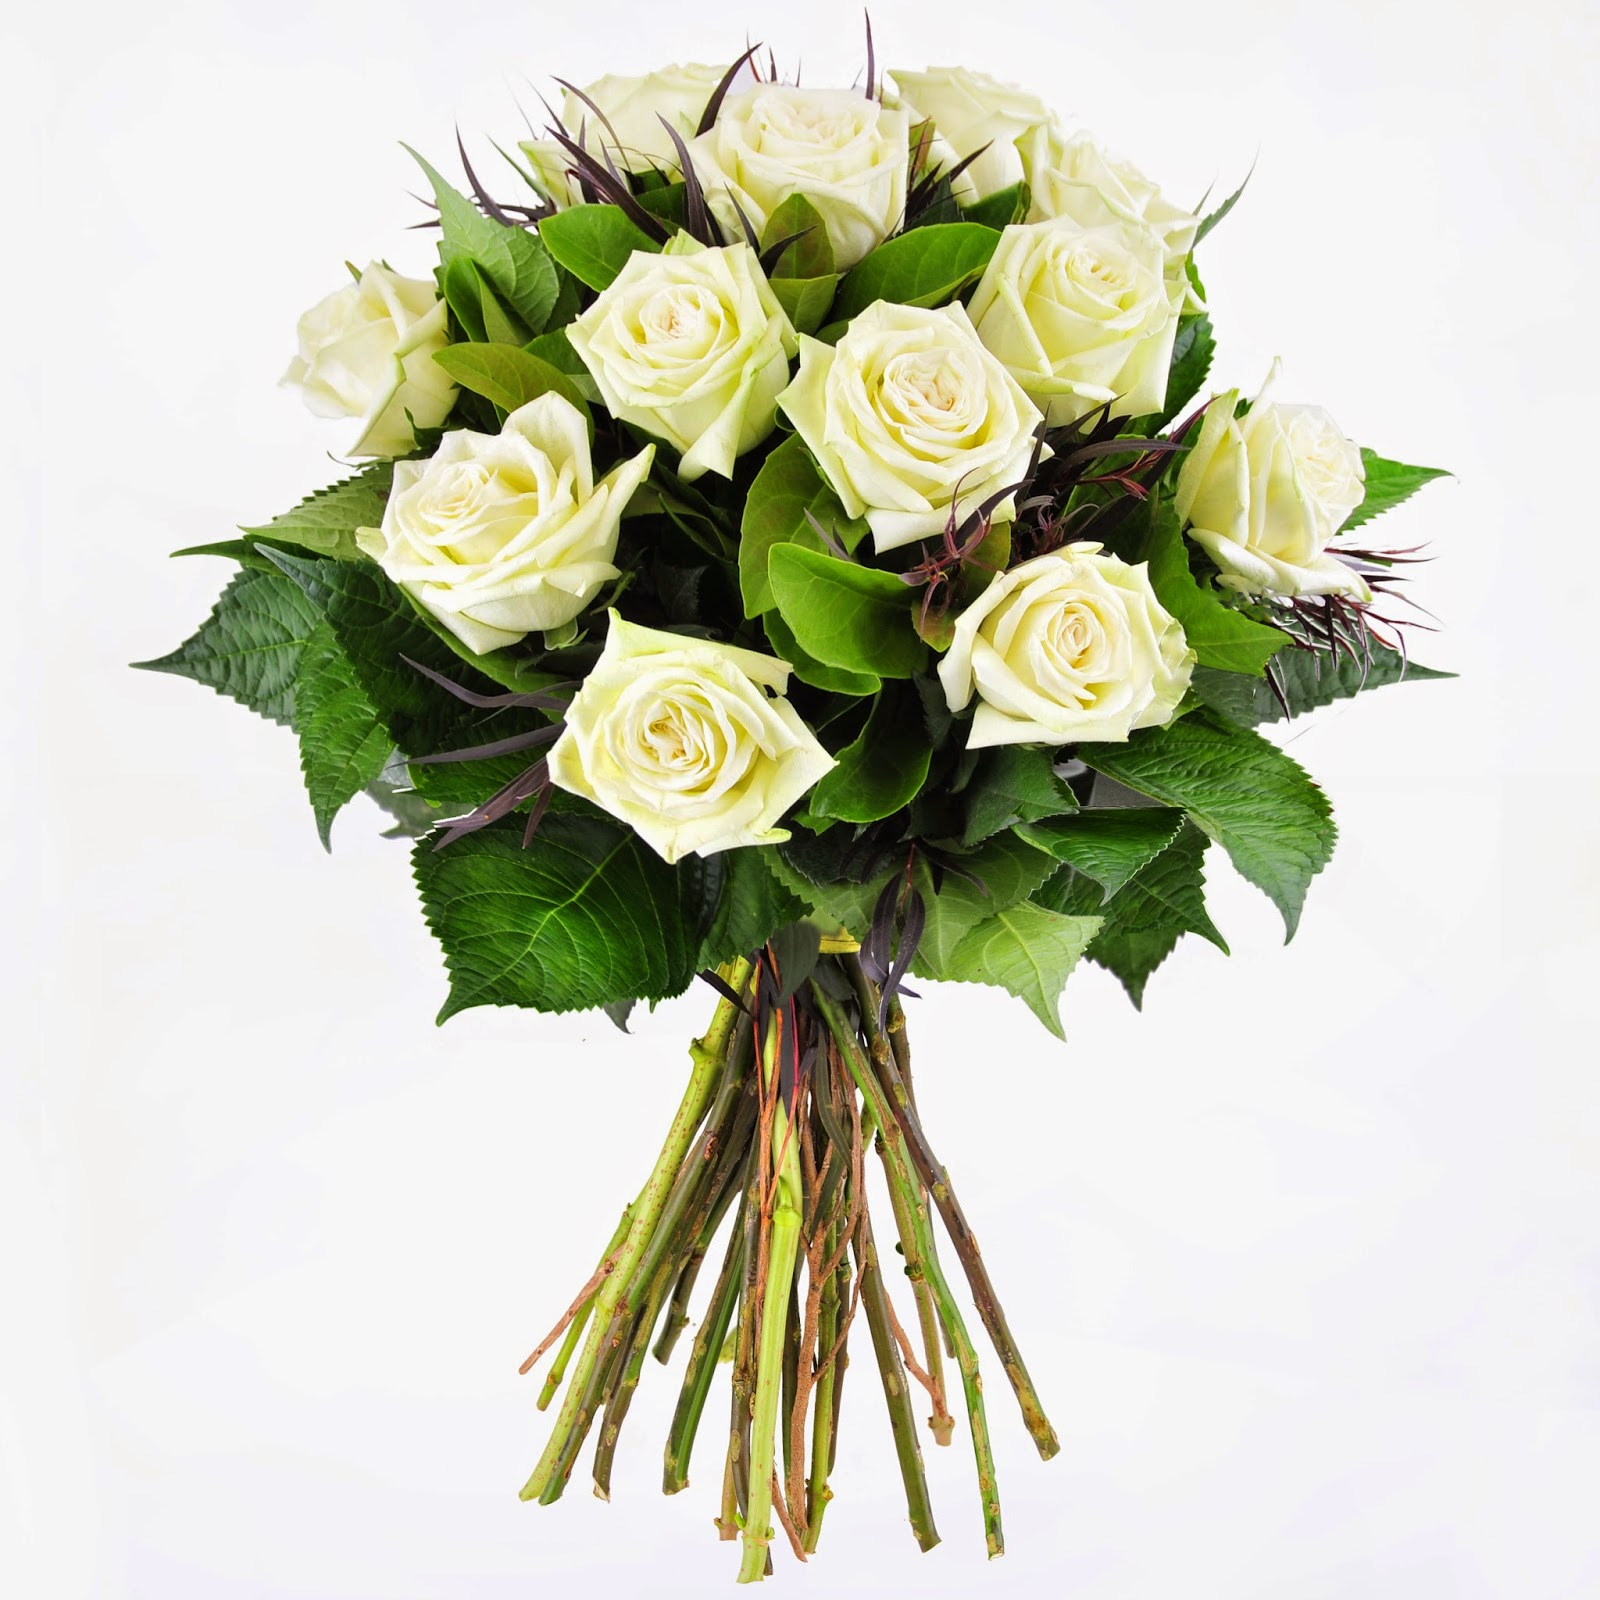 Urban flower sending sympathy flowers sympathy card messages bouquet of 12 green tea roses complemented with spear grass and greenery izmirmasajfo